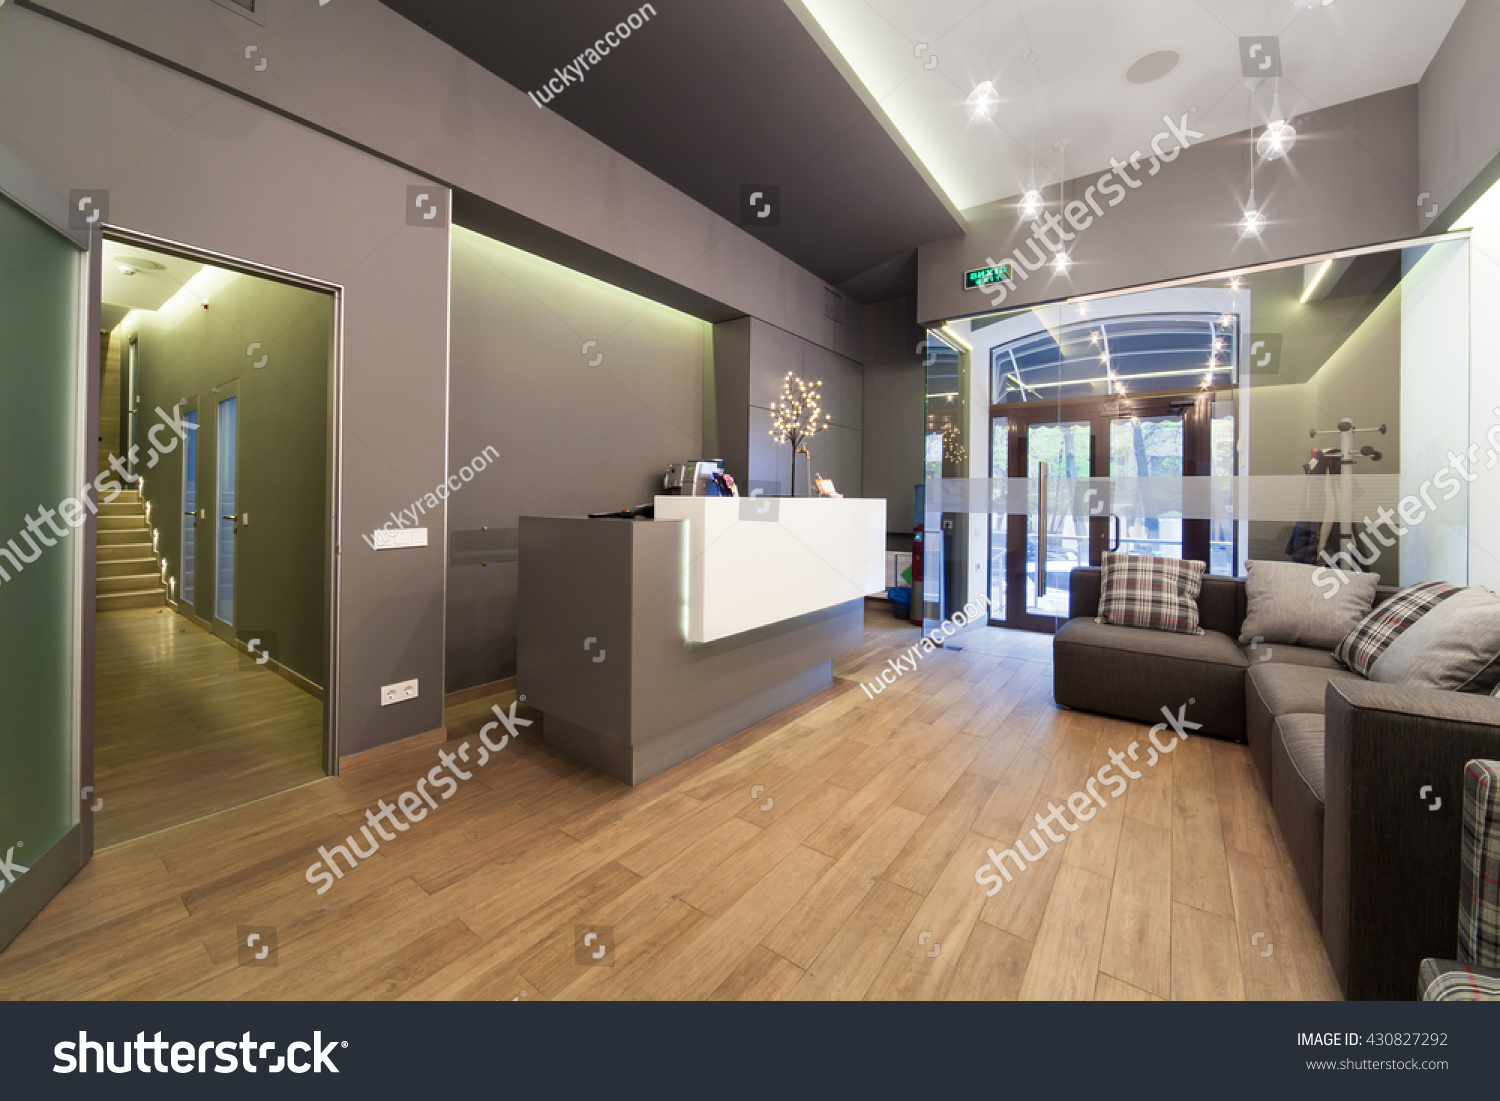 Modern interior design lobby dental clinic stock photo for Dental clinic interior designs